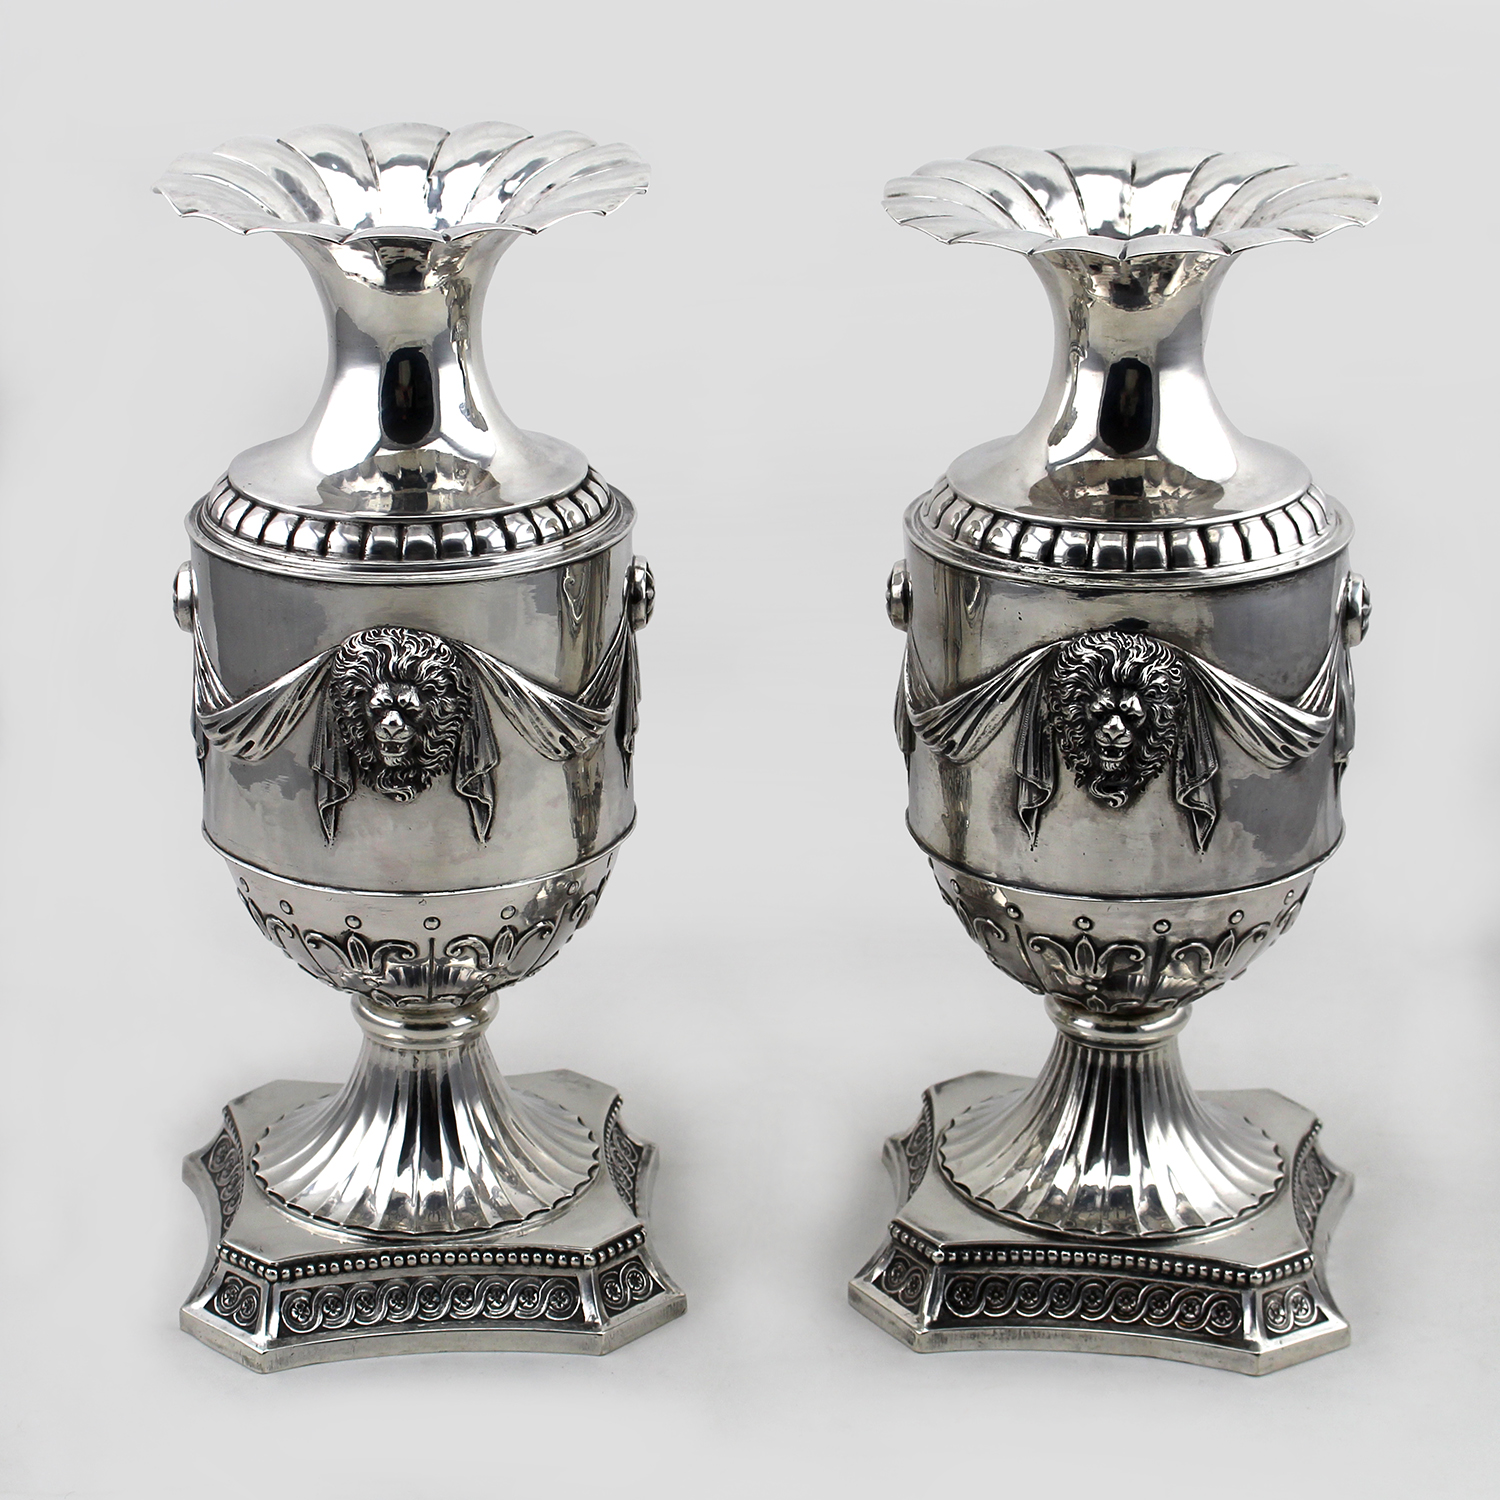 Pair of silver urns, with French marks and English import marks for London 1900